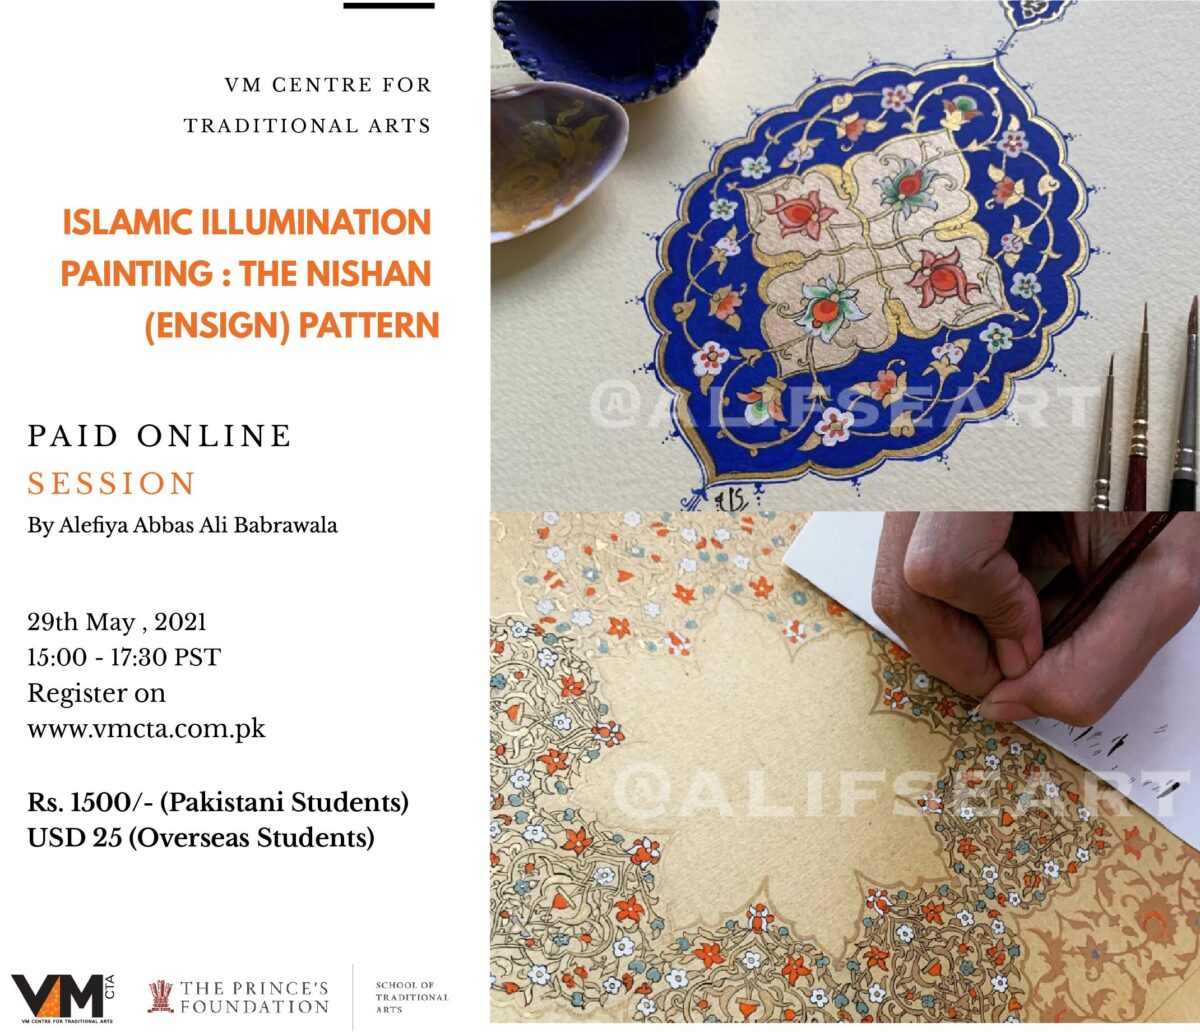 Islamic Illumination Painting: The Nishan (Ensign) Pattern